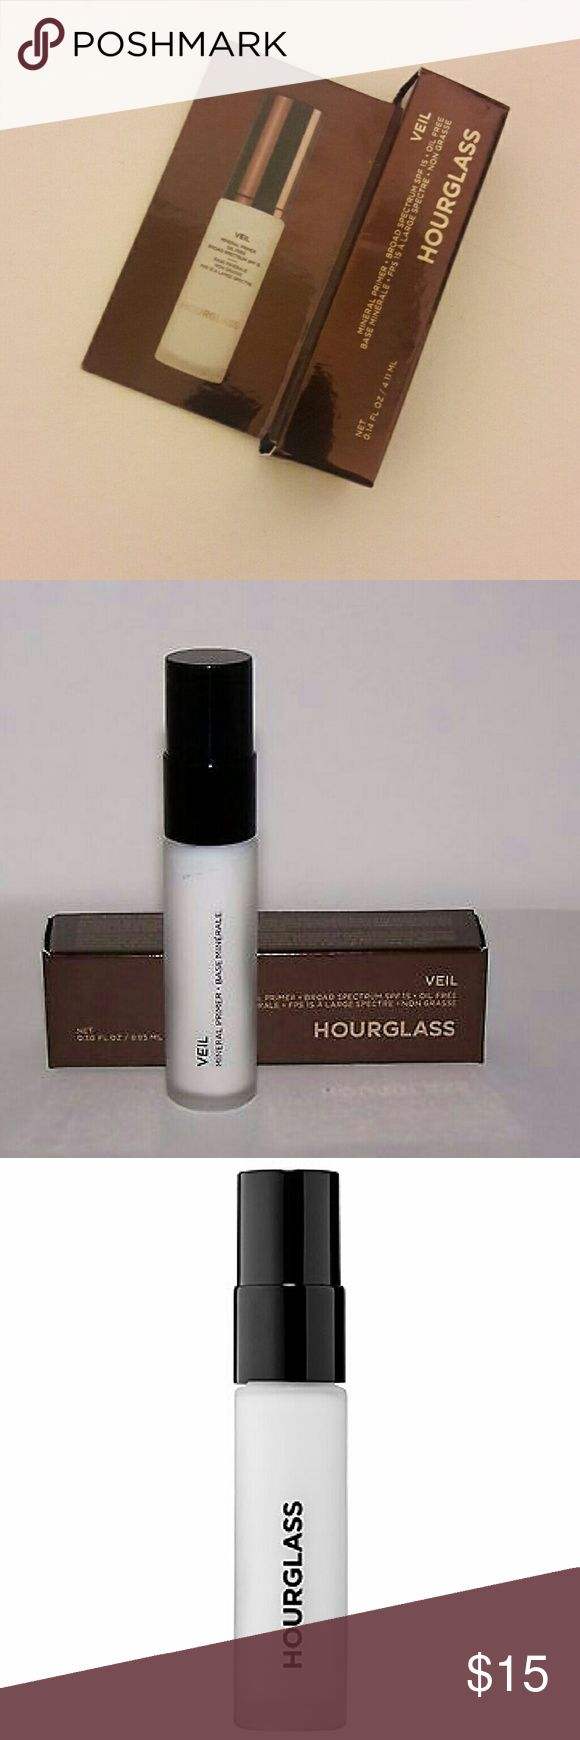 Primer Veil Mineral Primer  * Broad Spectrum SPF 15 * Oil Free  A mineral-based, water-resistant primer that neutralizes the skin, minimizes shine, and creates a smooth, uniform canvas for flawless makeup application. Hourglass  Makeup Face Primer